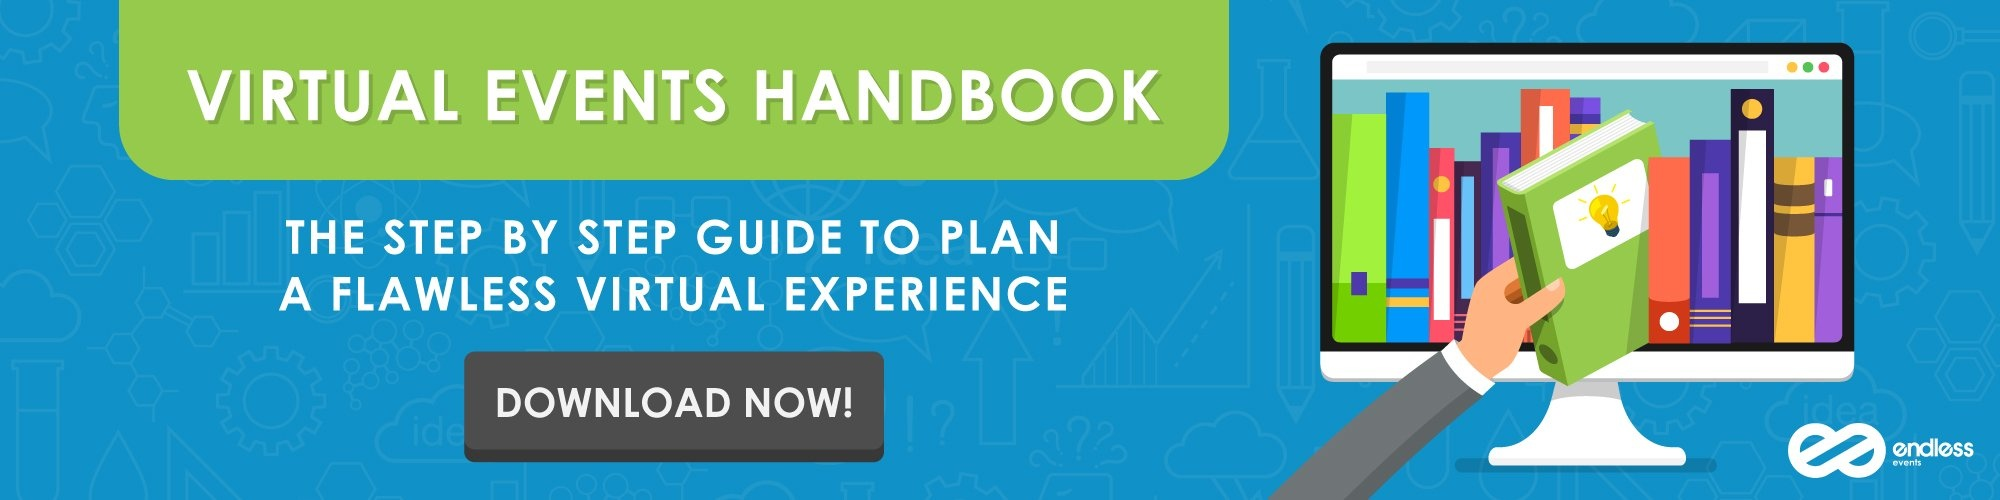 Virtual Events Handbook